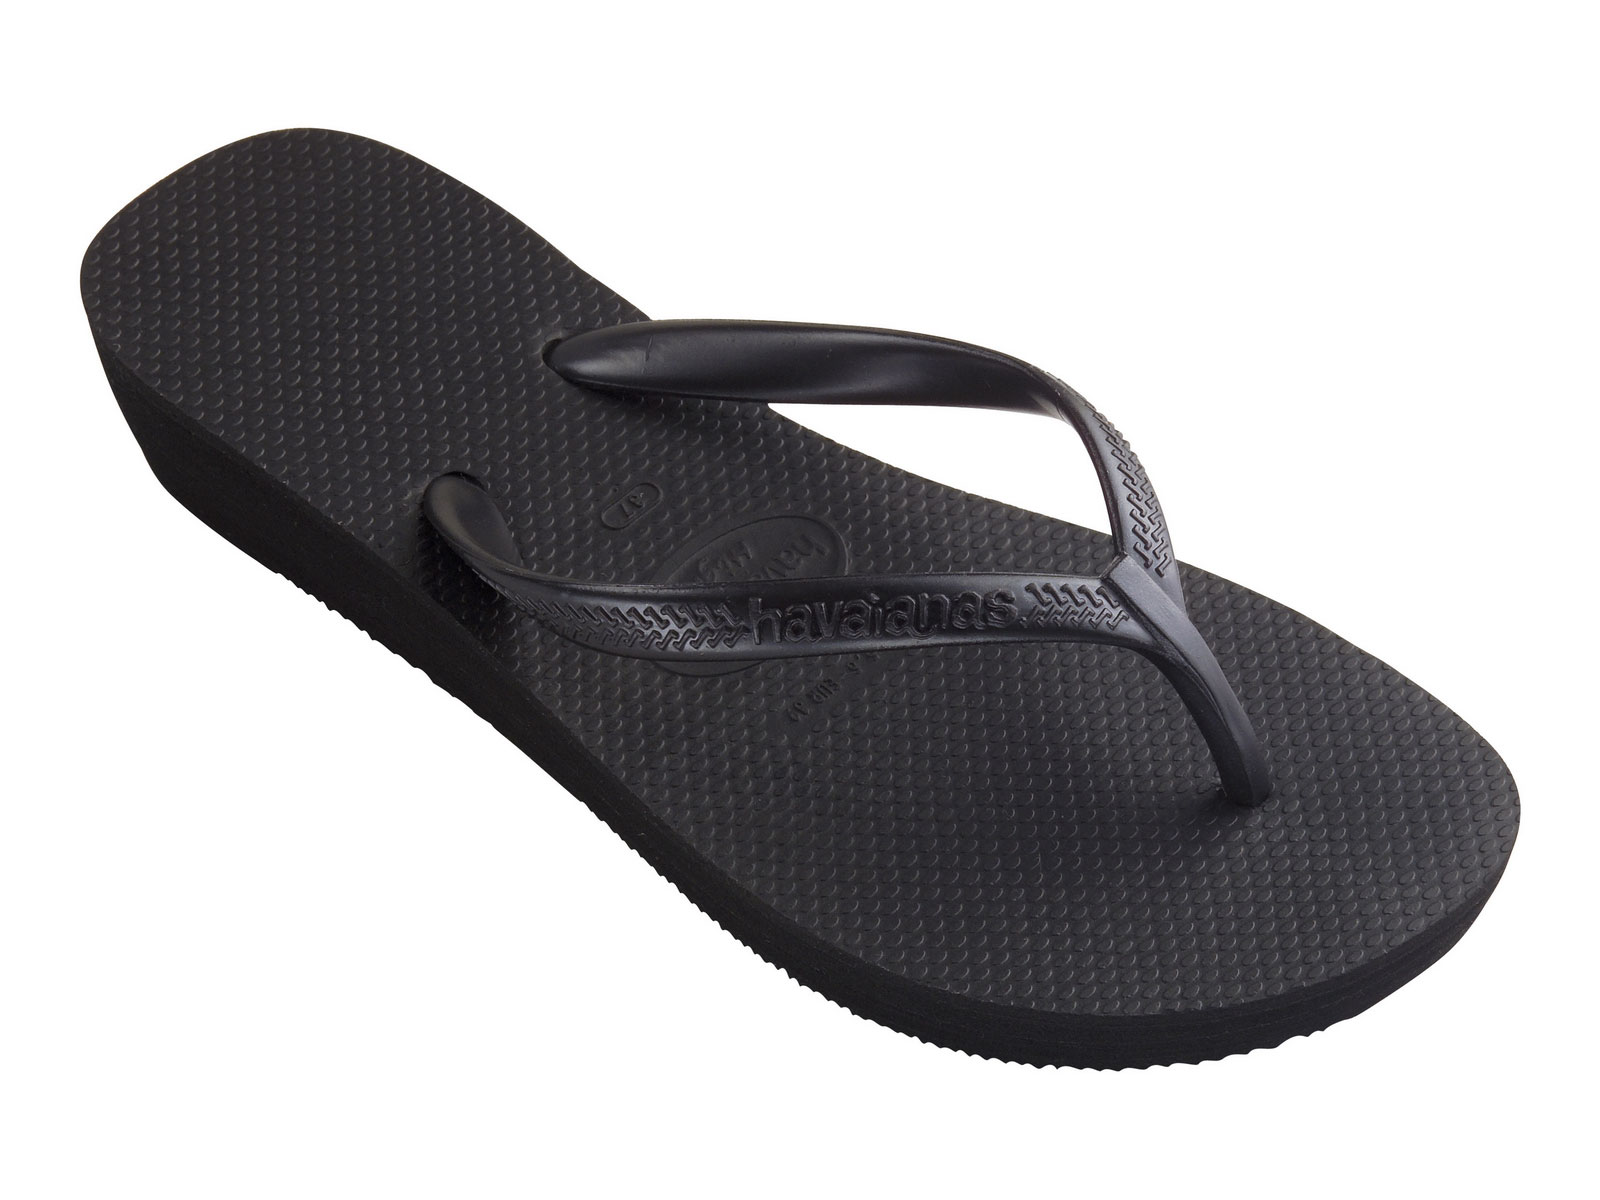 Flip Flops For Women. Comfort and style - we've combined the two to offer a variety of women's flip-flop styles to hug your feet with every step, and provide you great arch support.